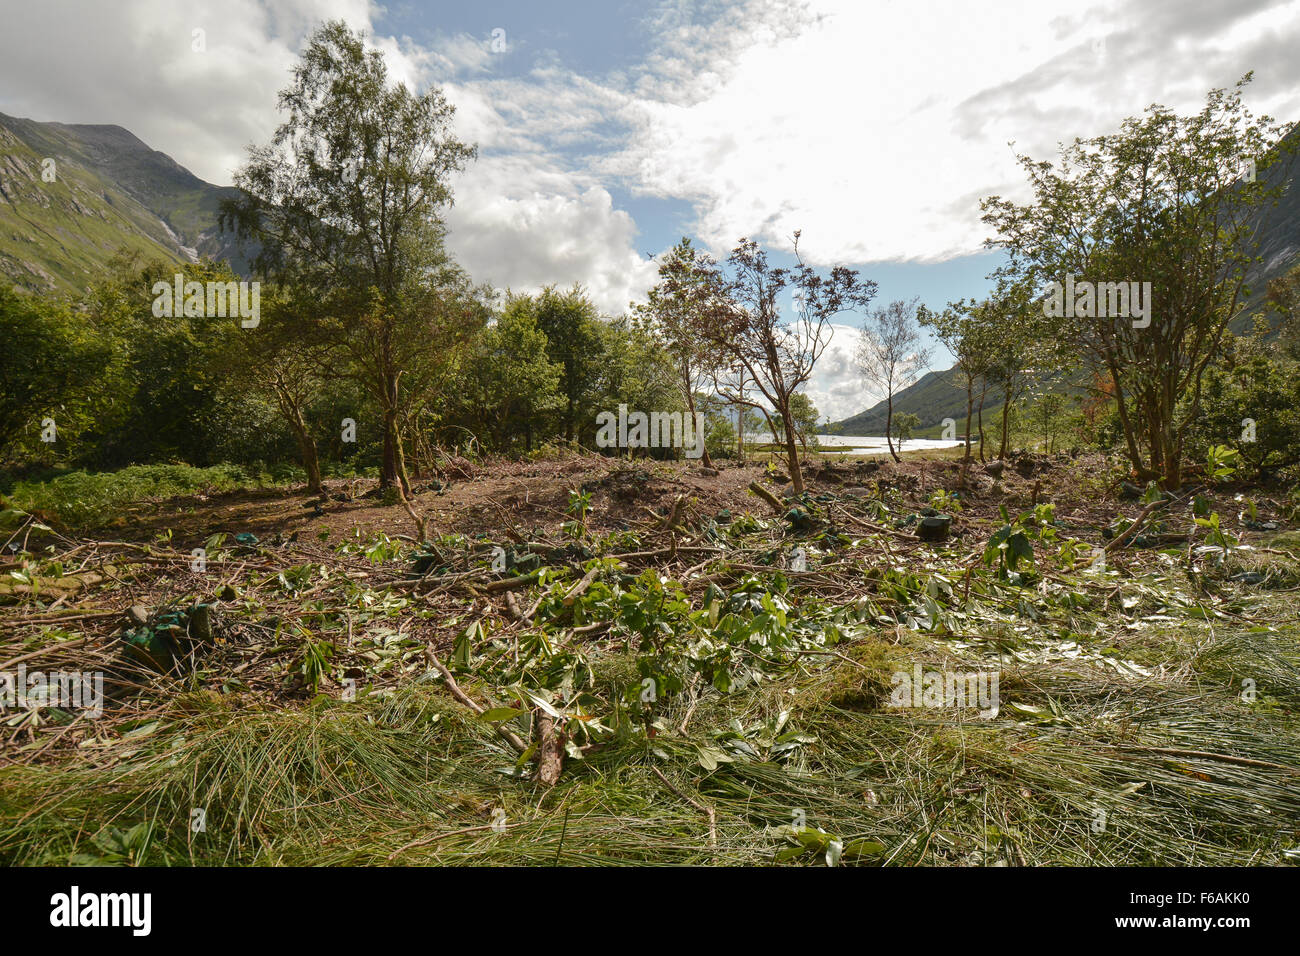 Invasive Rhododendron clearance and management in the Scottish Highlands - Glen Etive close to Loch Etive, Scotland, Stock Photo